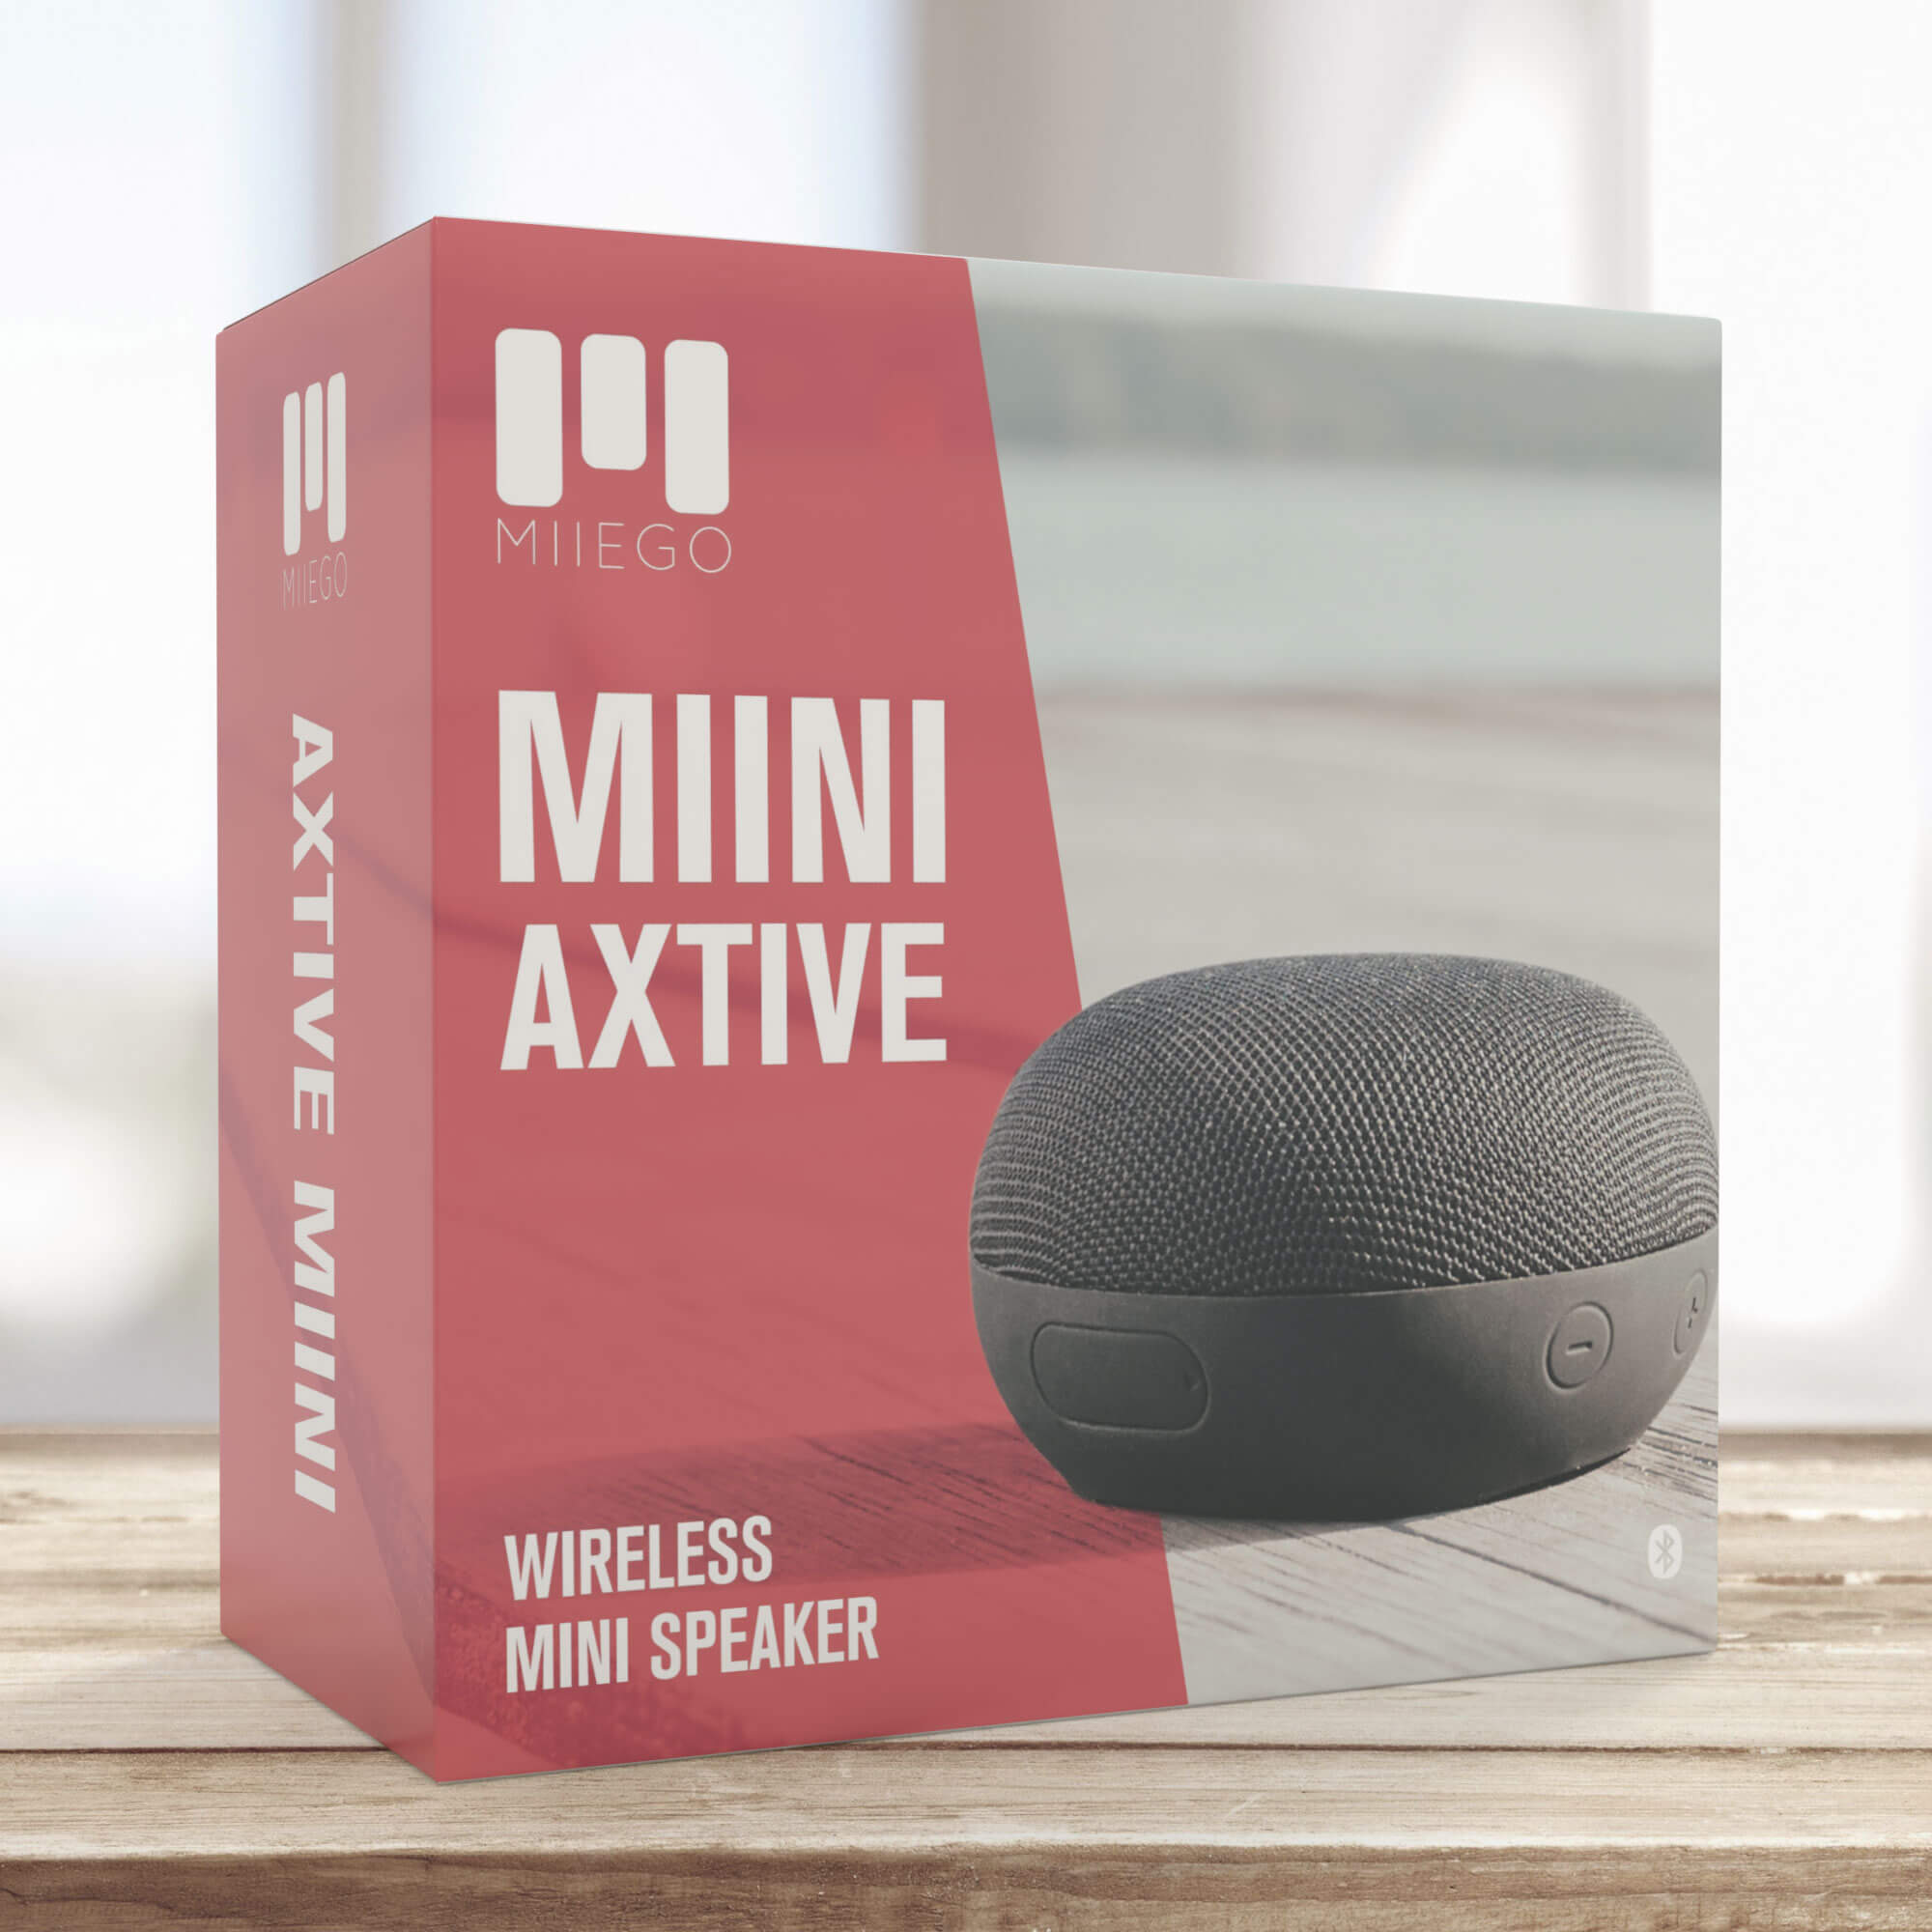 AXTIVE_MIINI_packaging1